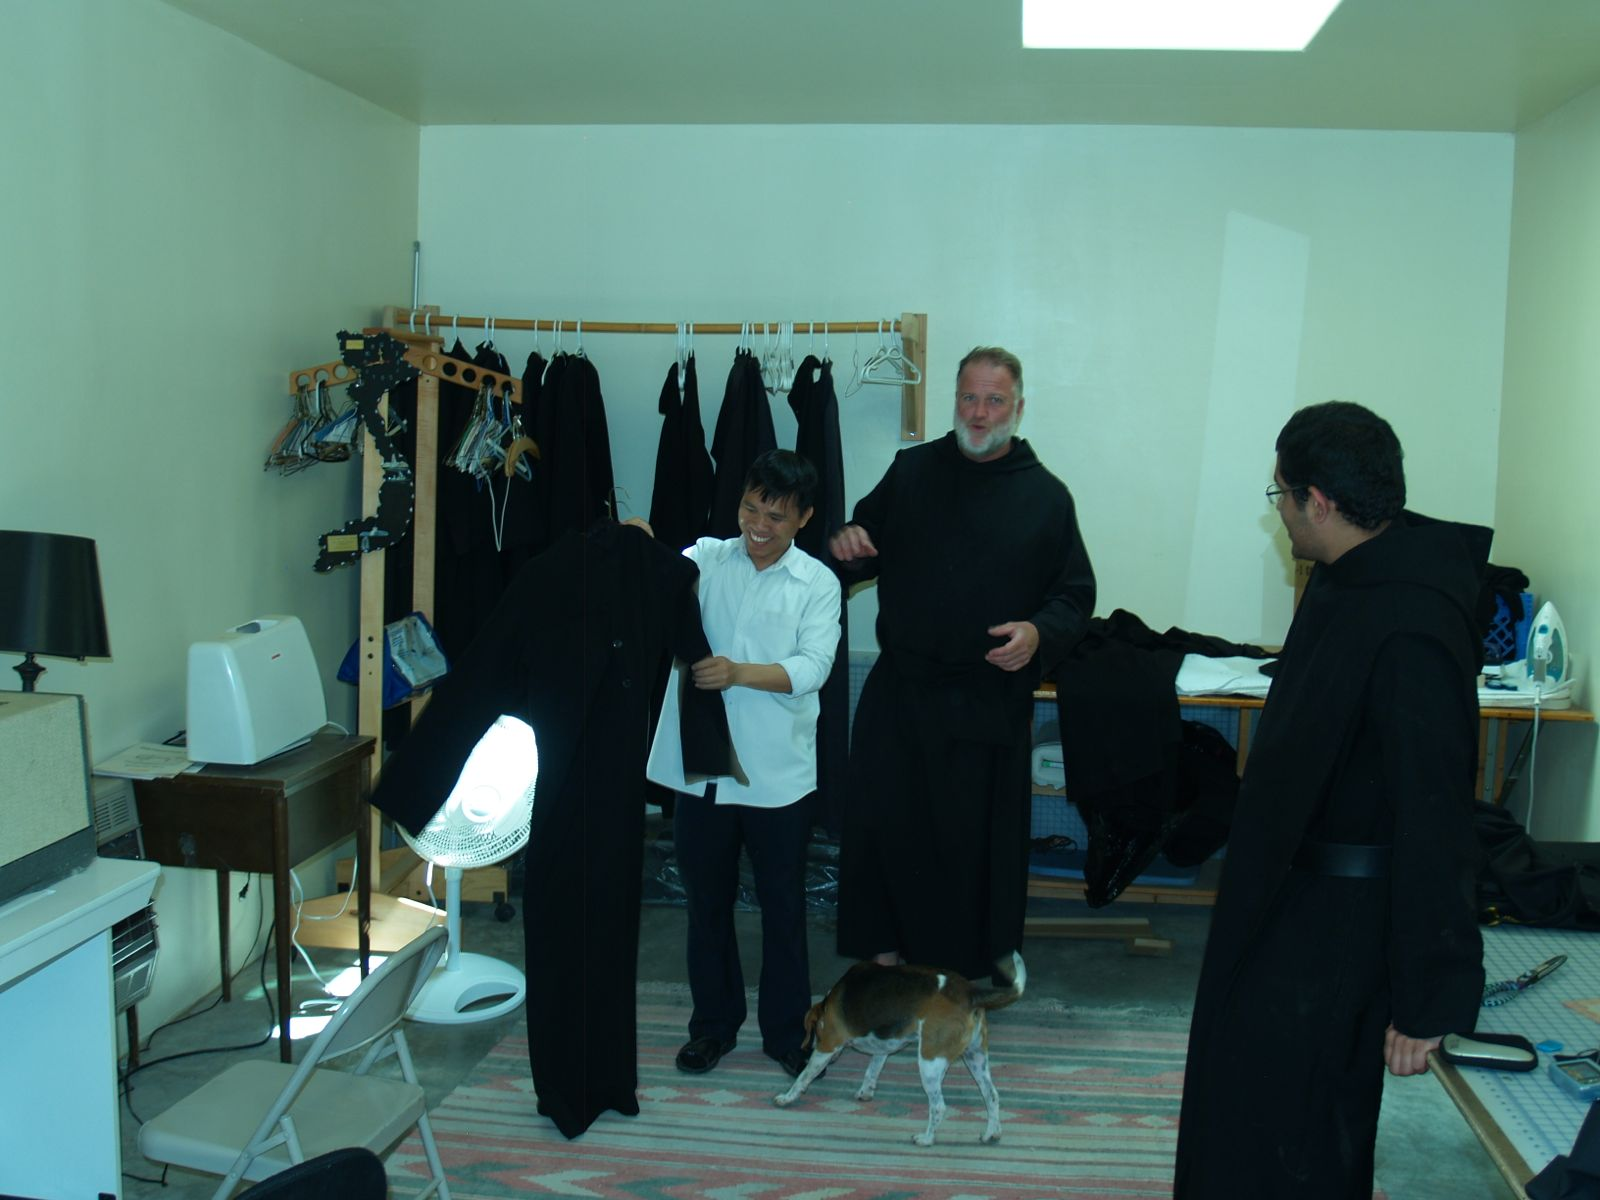 Monk being fitted for new habit